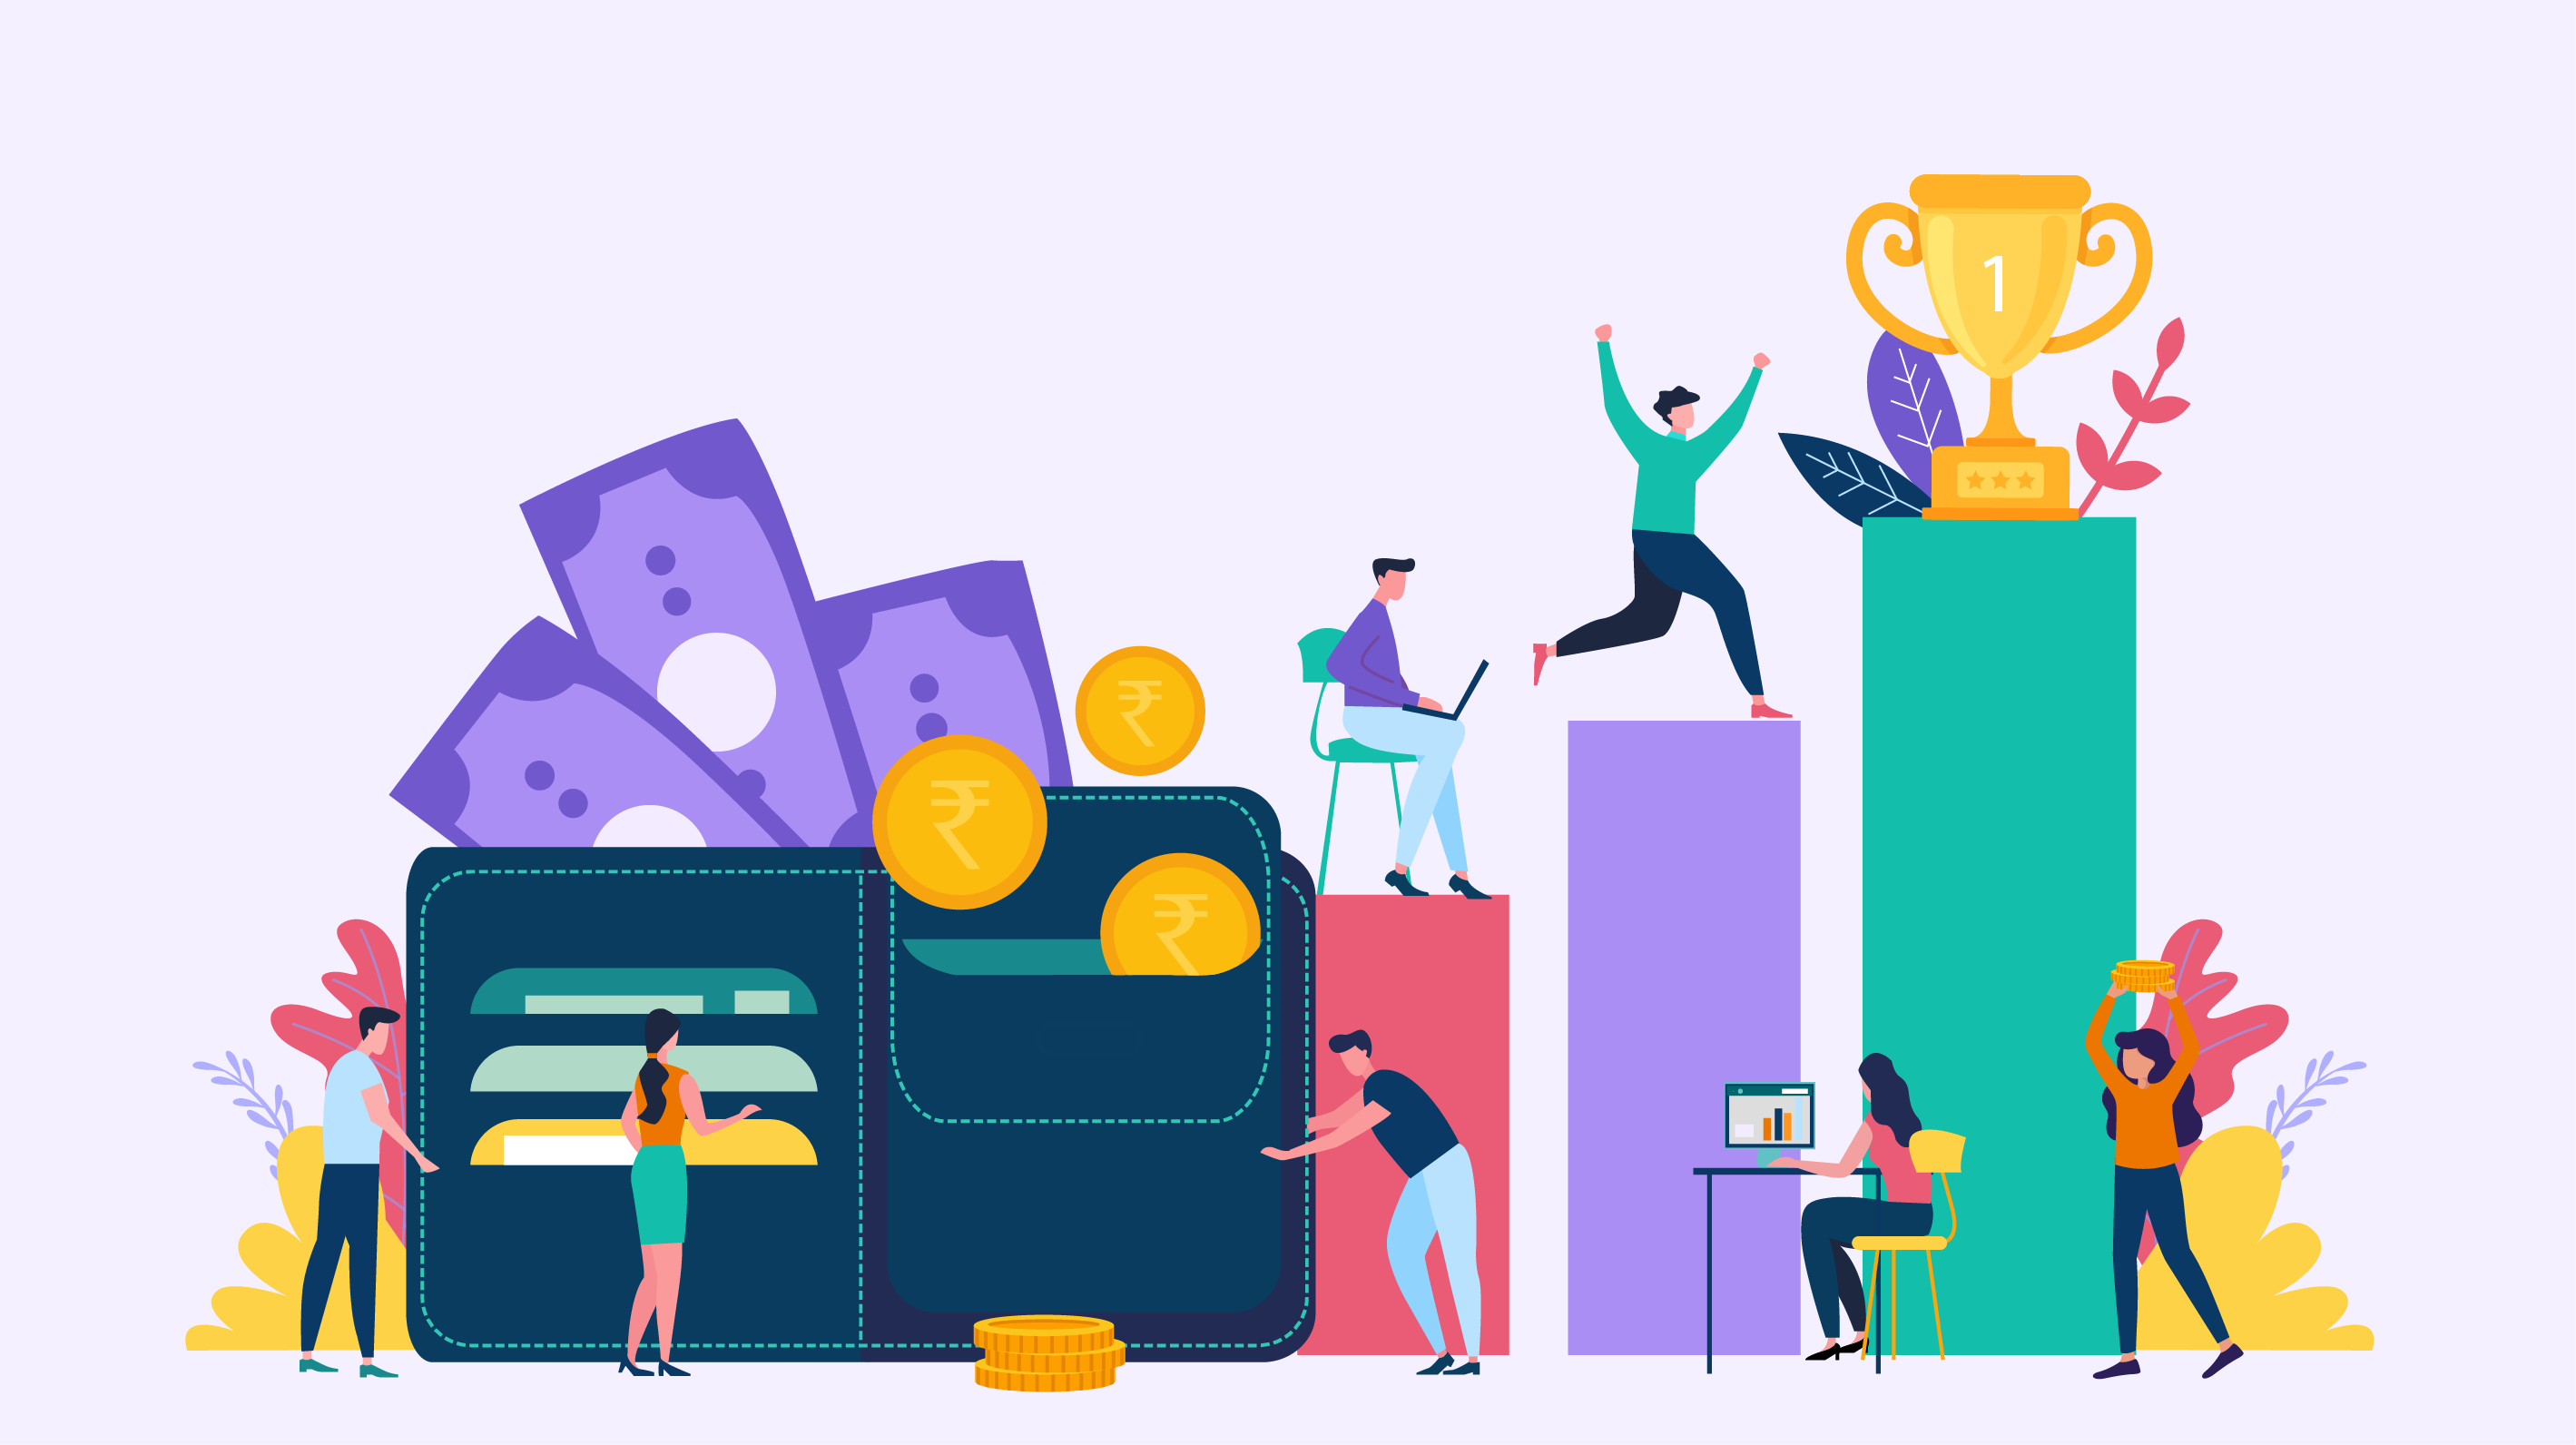 32 Rewards and Recognition Ideas to Boost Employee Recognition [2019 Updated]